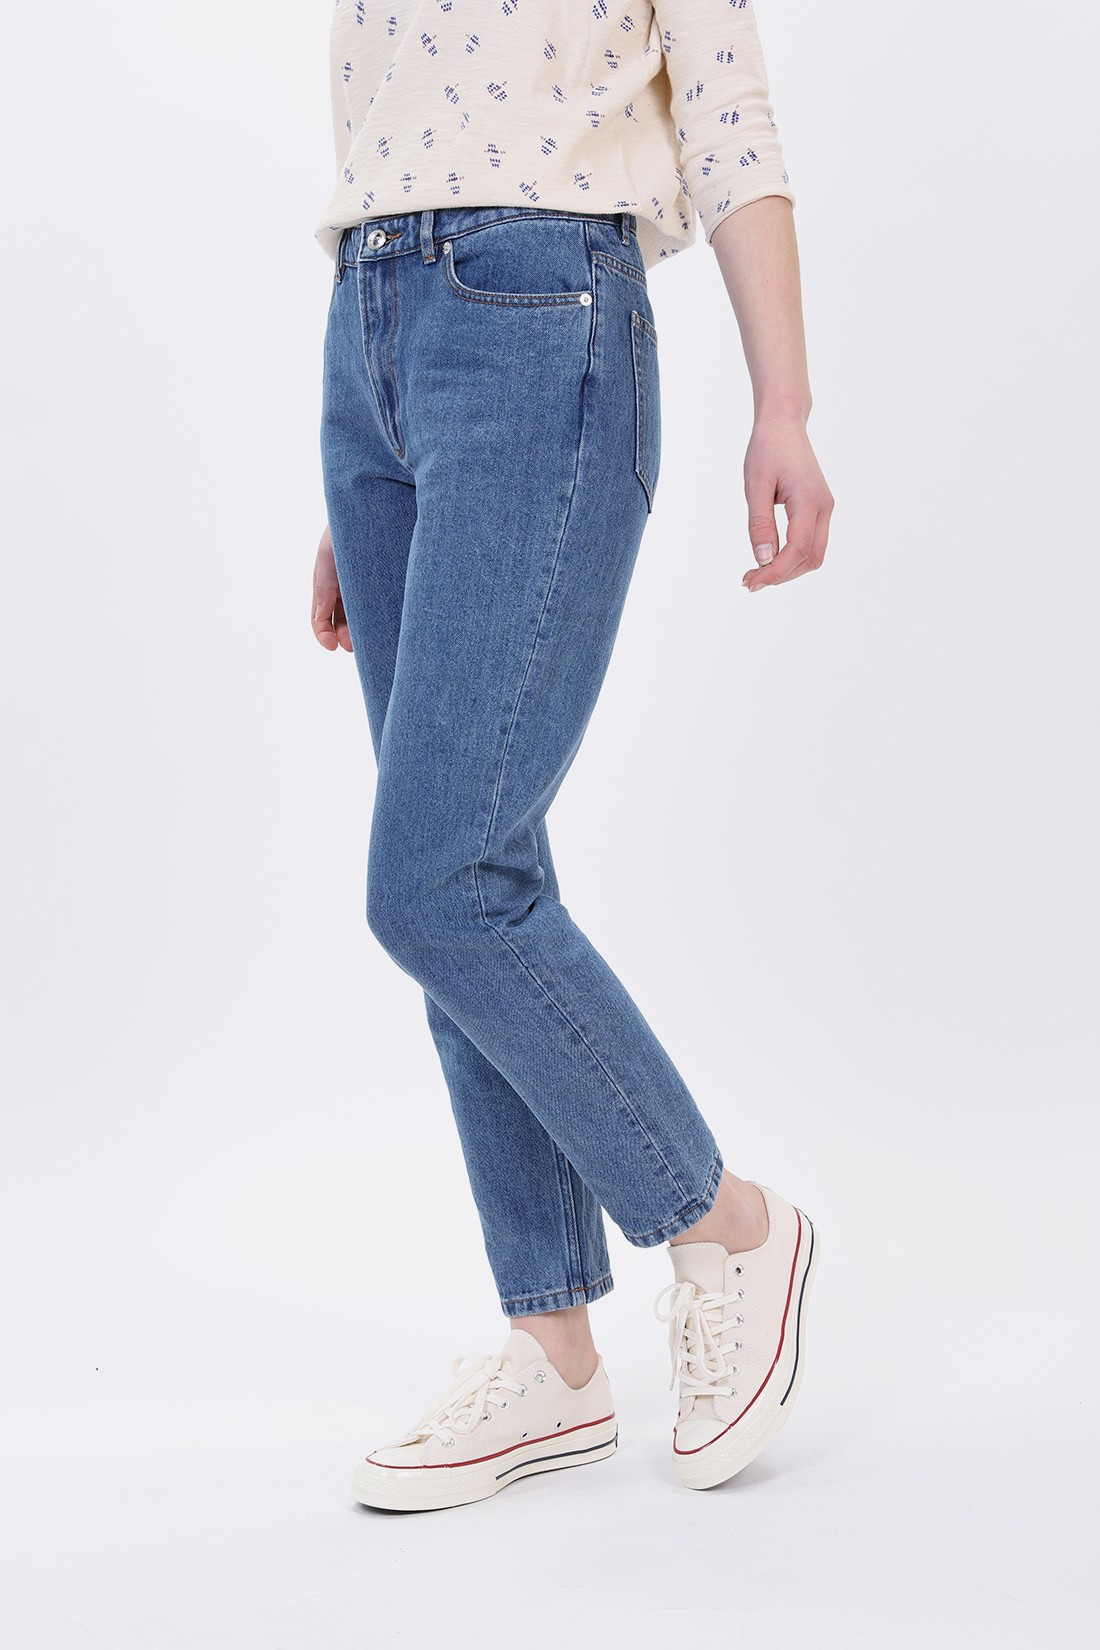 A.P.C. FOR WOMAN / Jean 80s Indigo